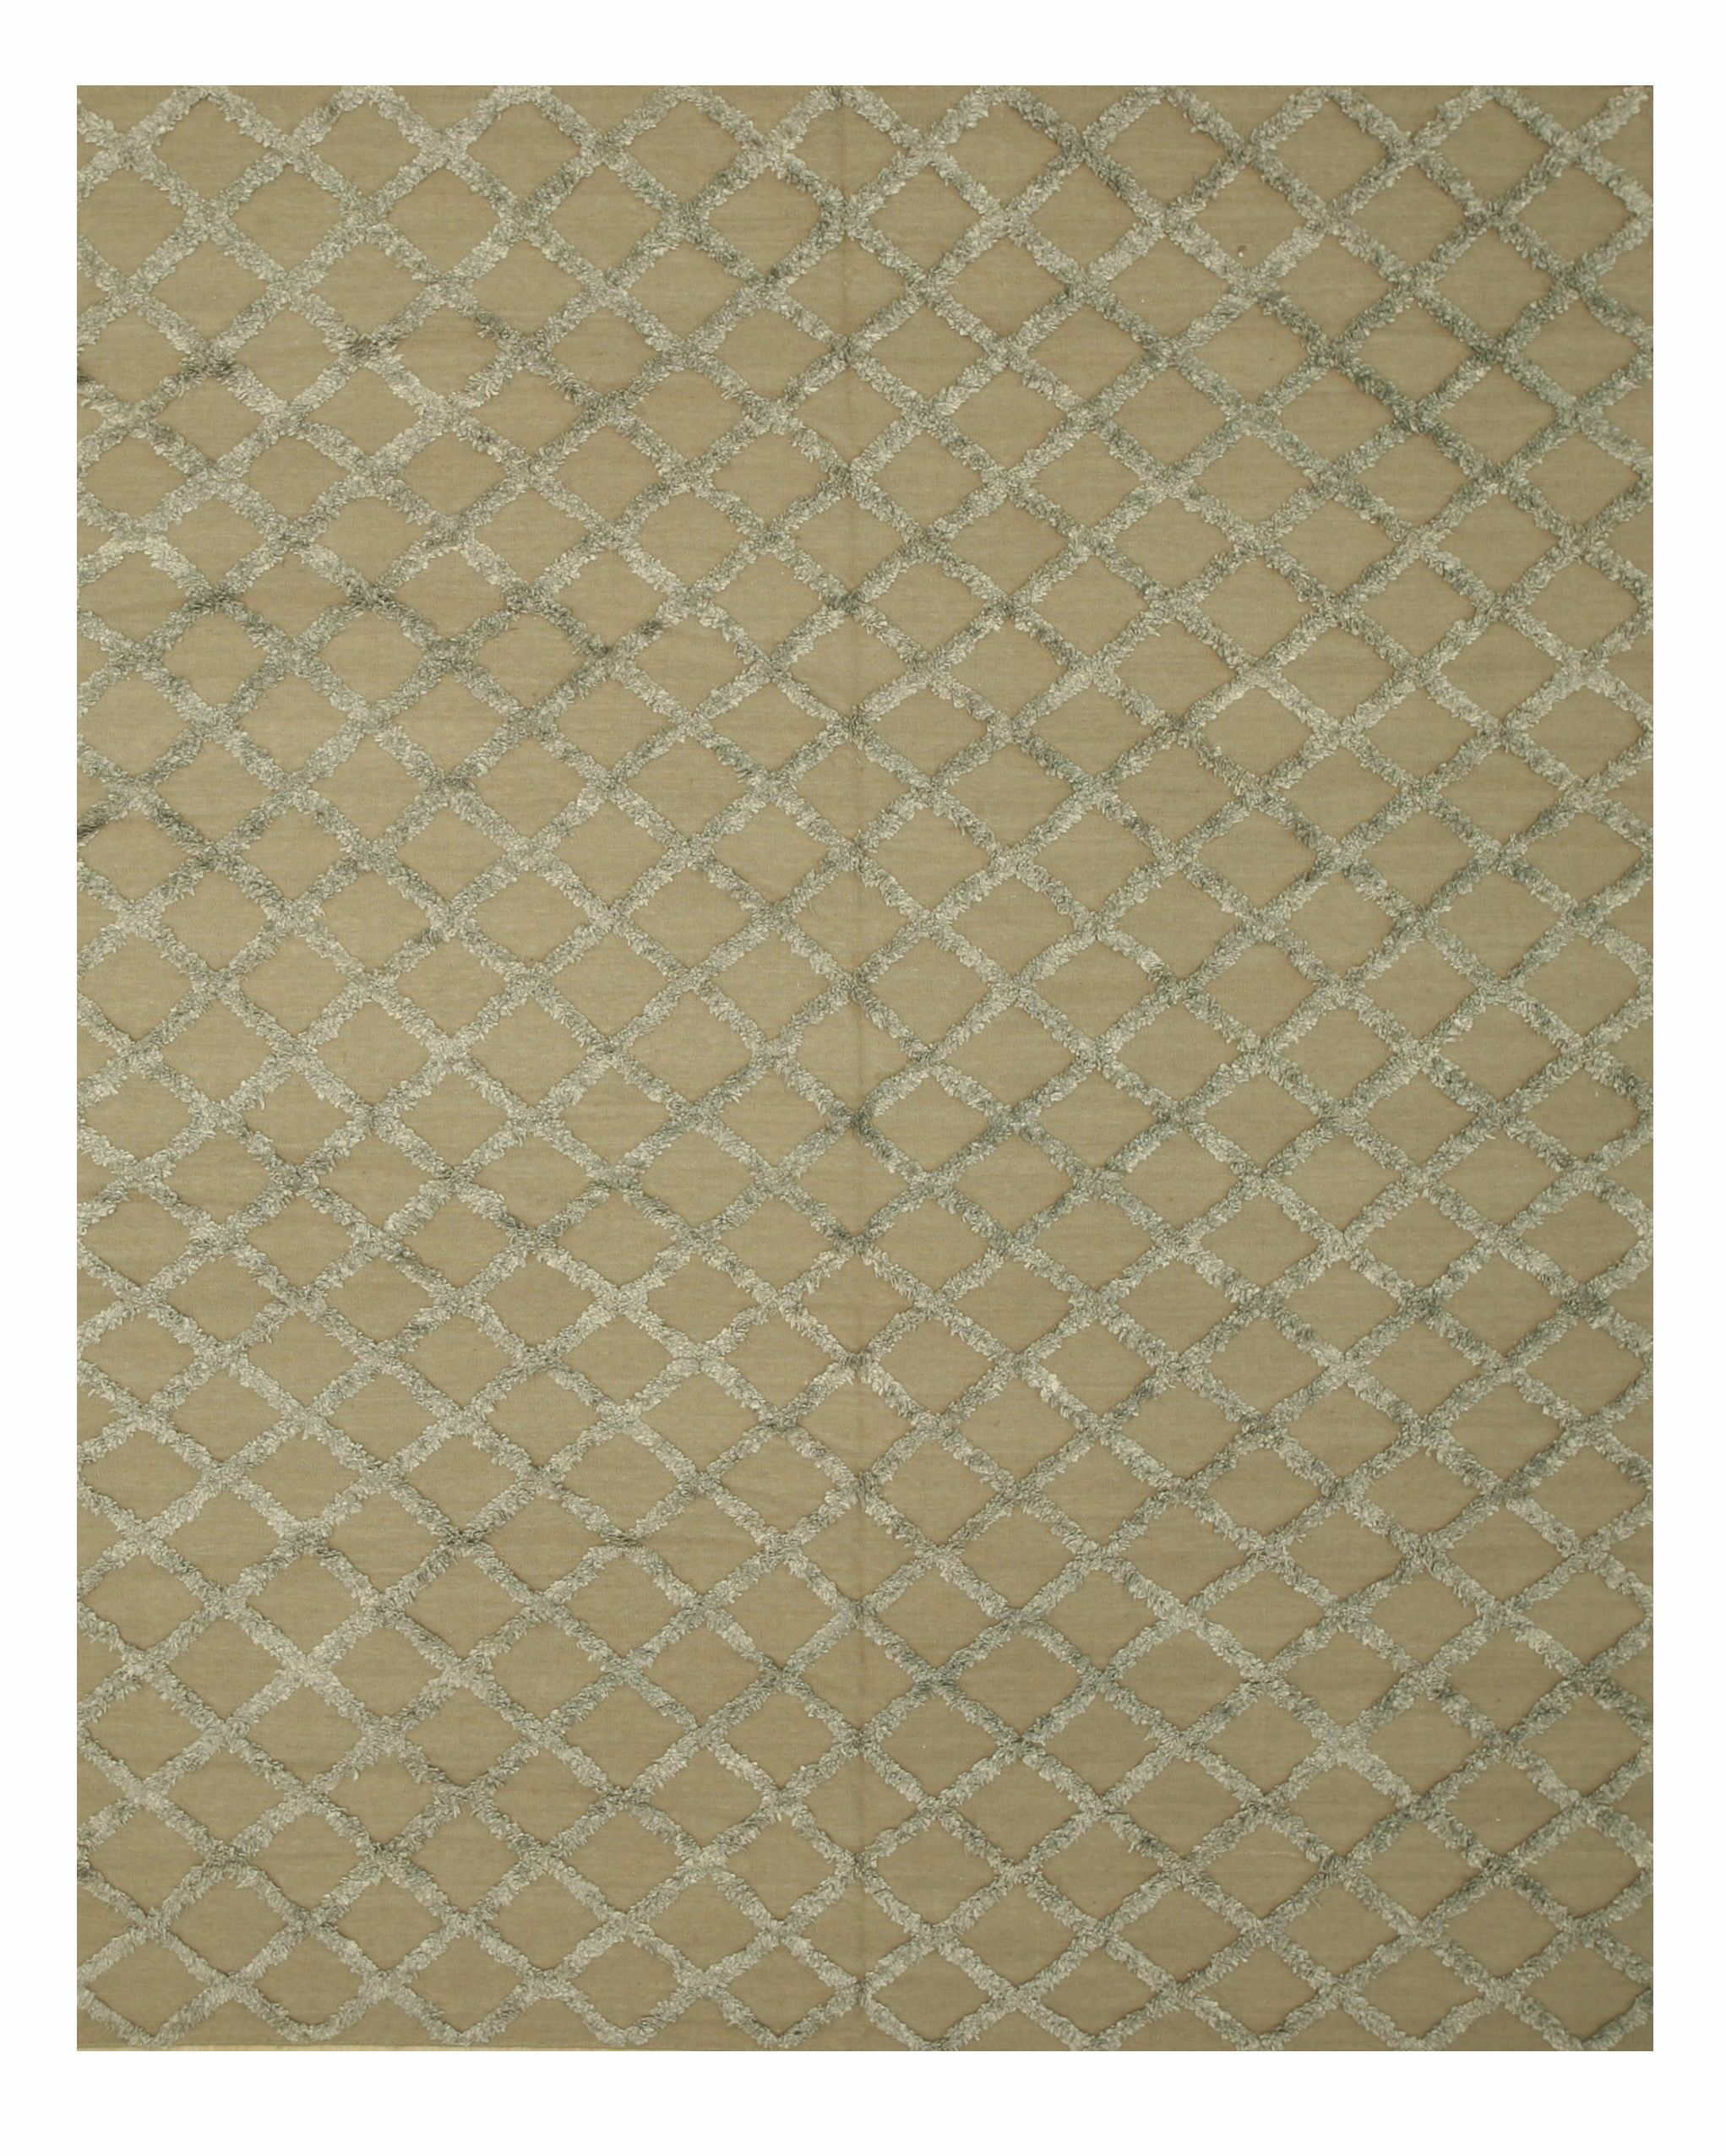 Marakesh Hand-Woven Silver Area Rug Rug Size: 10' x 14'